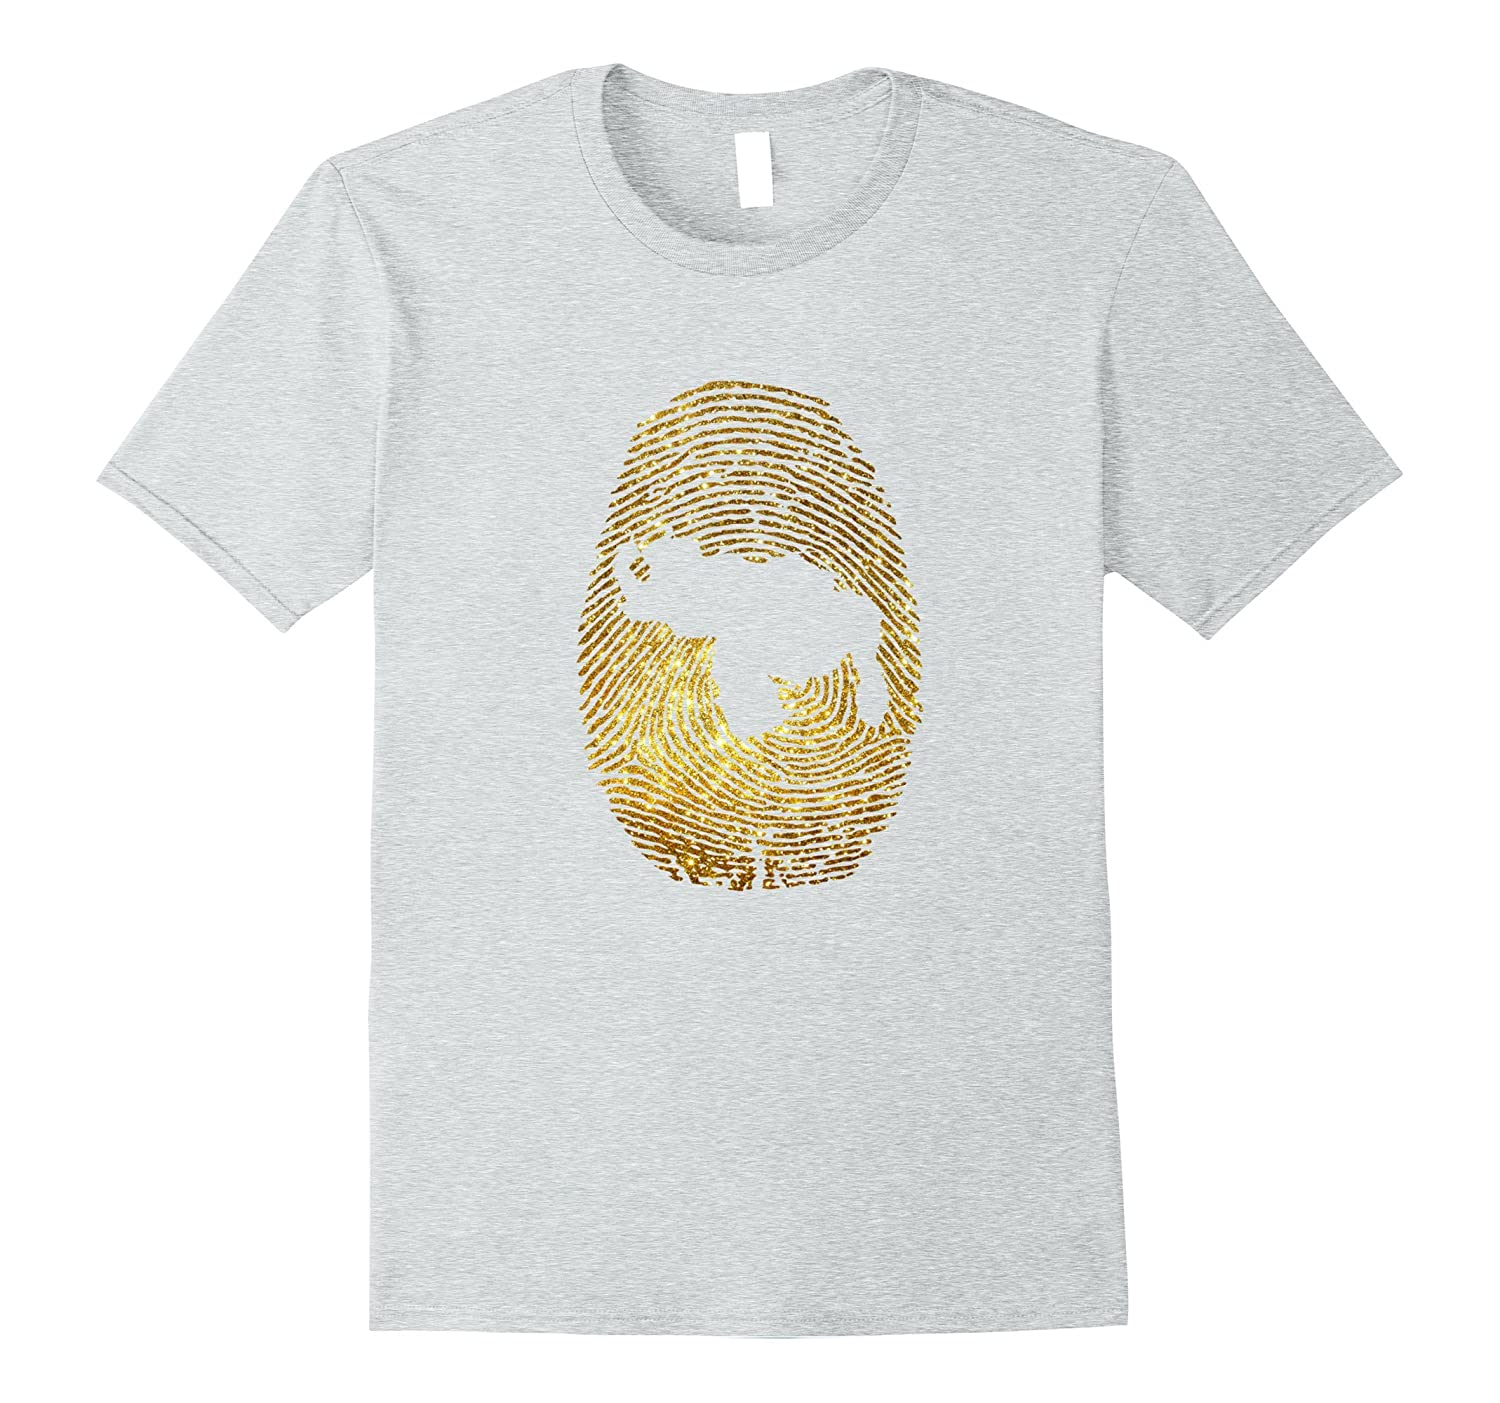 VENEZUELA FINGERPRINT GOLD GLITTER EFFECT PRINT SHIRT-BN